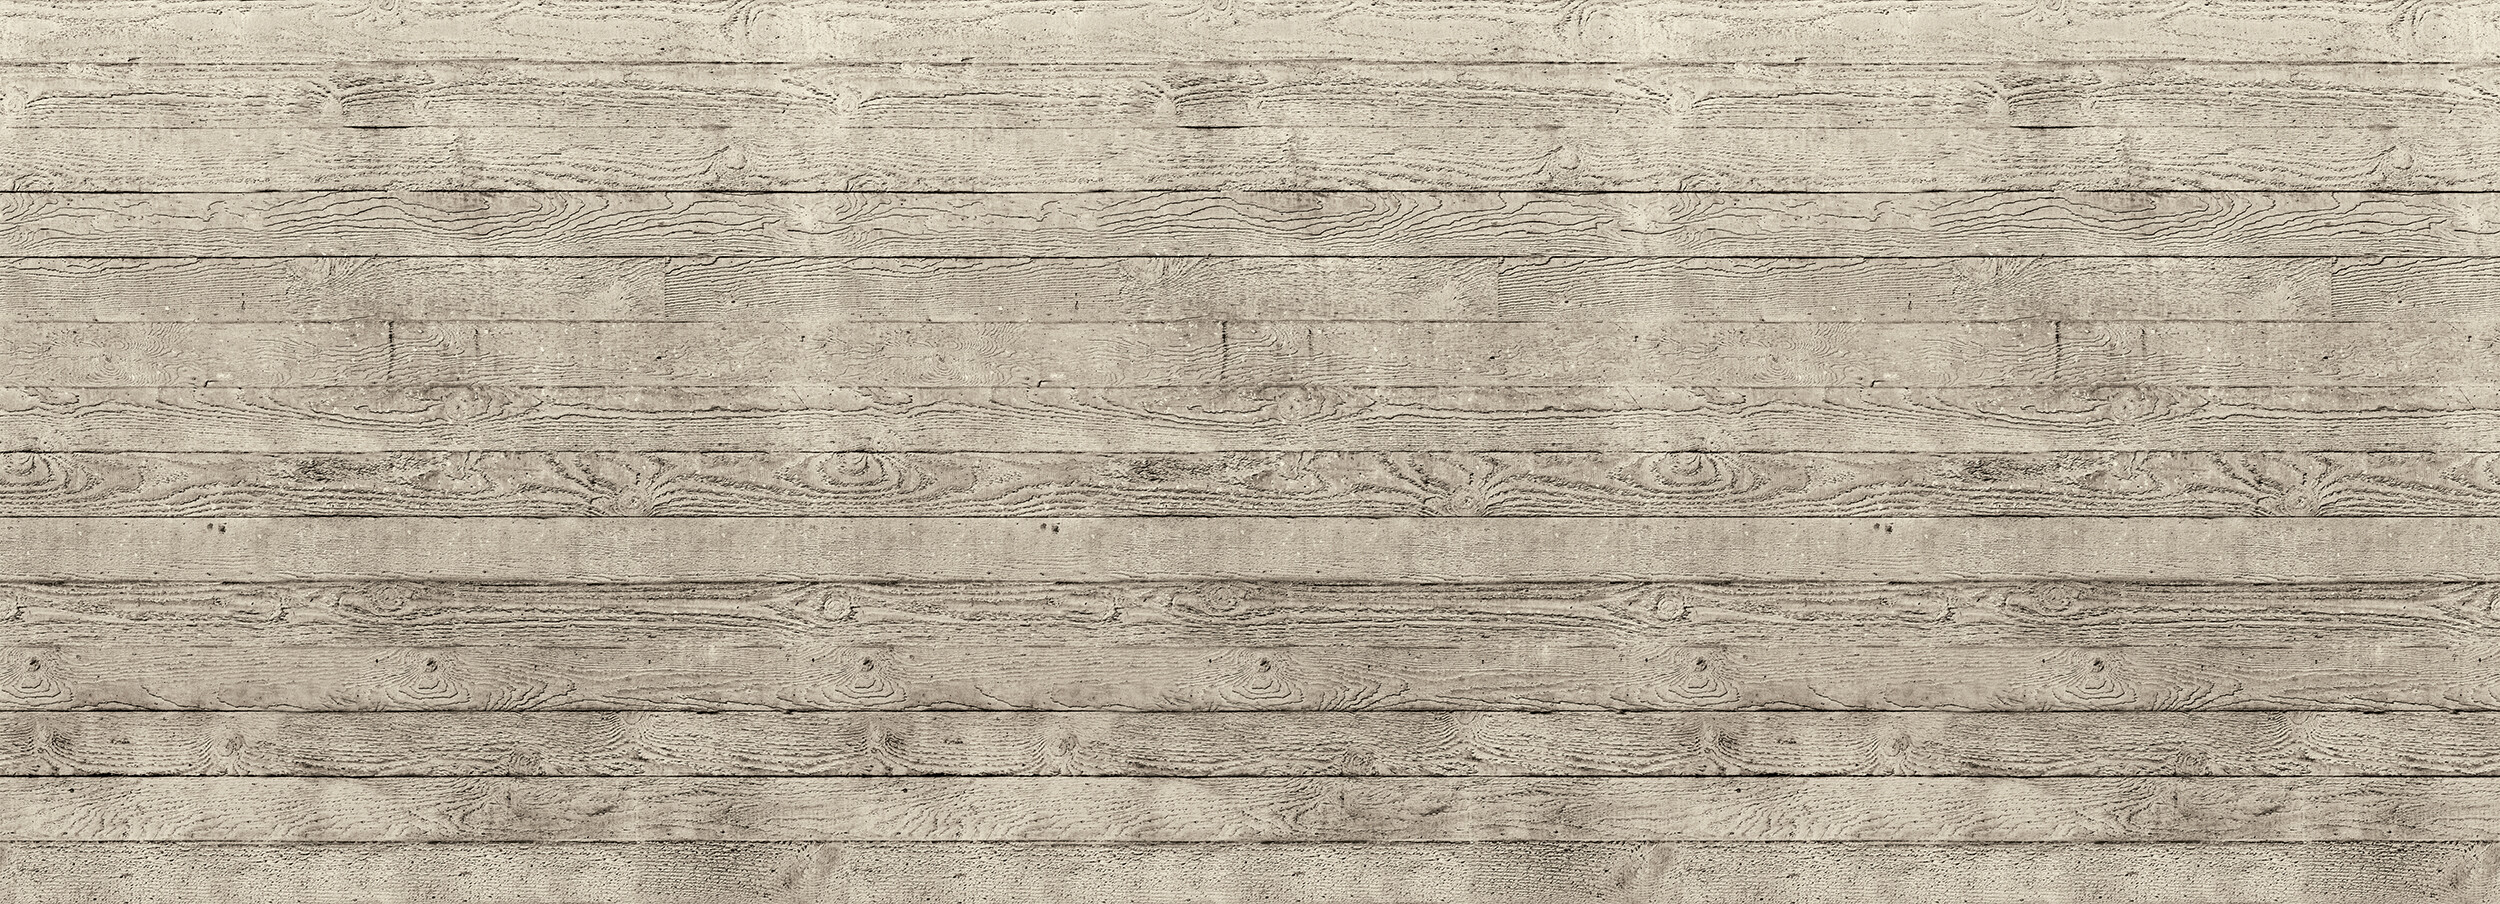 Concrete Wood Linen